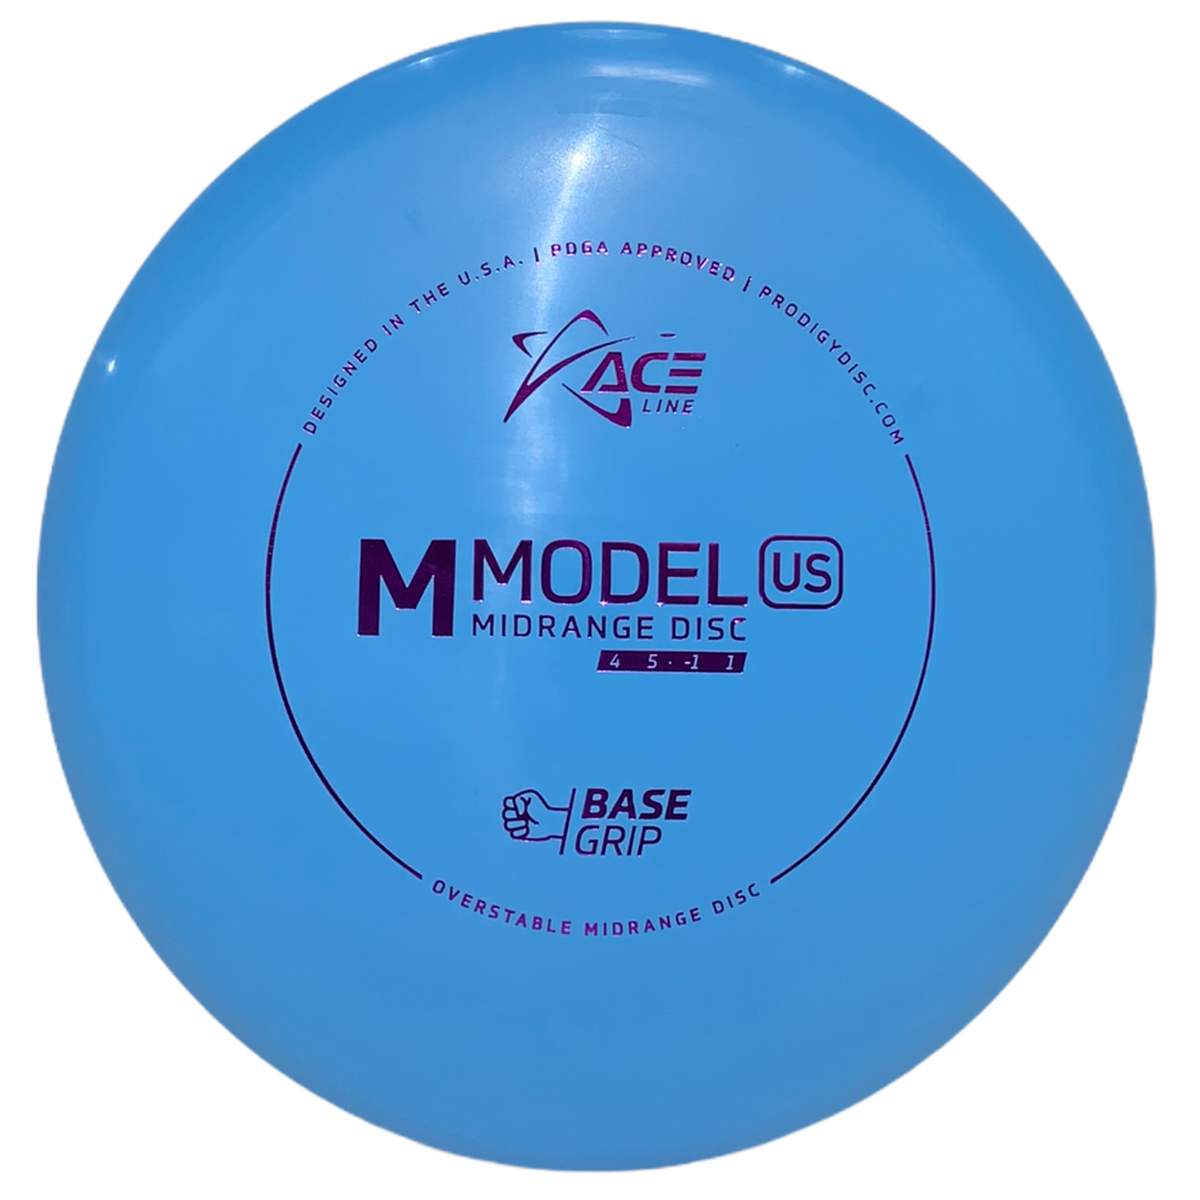 Prodigy Ace Line Base Grip M Model US